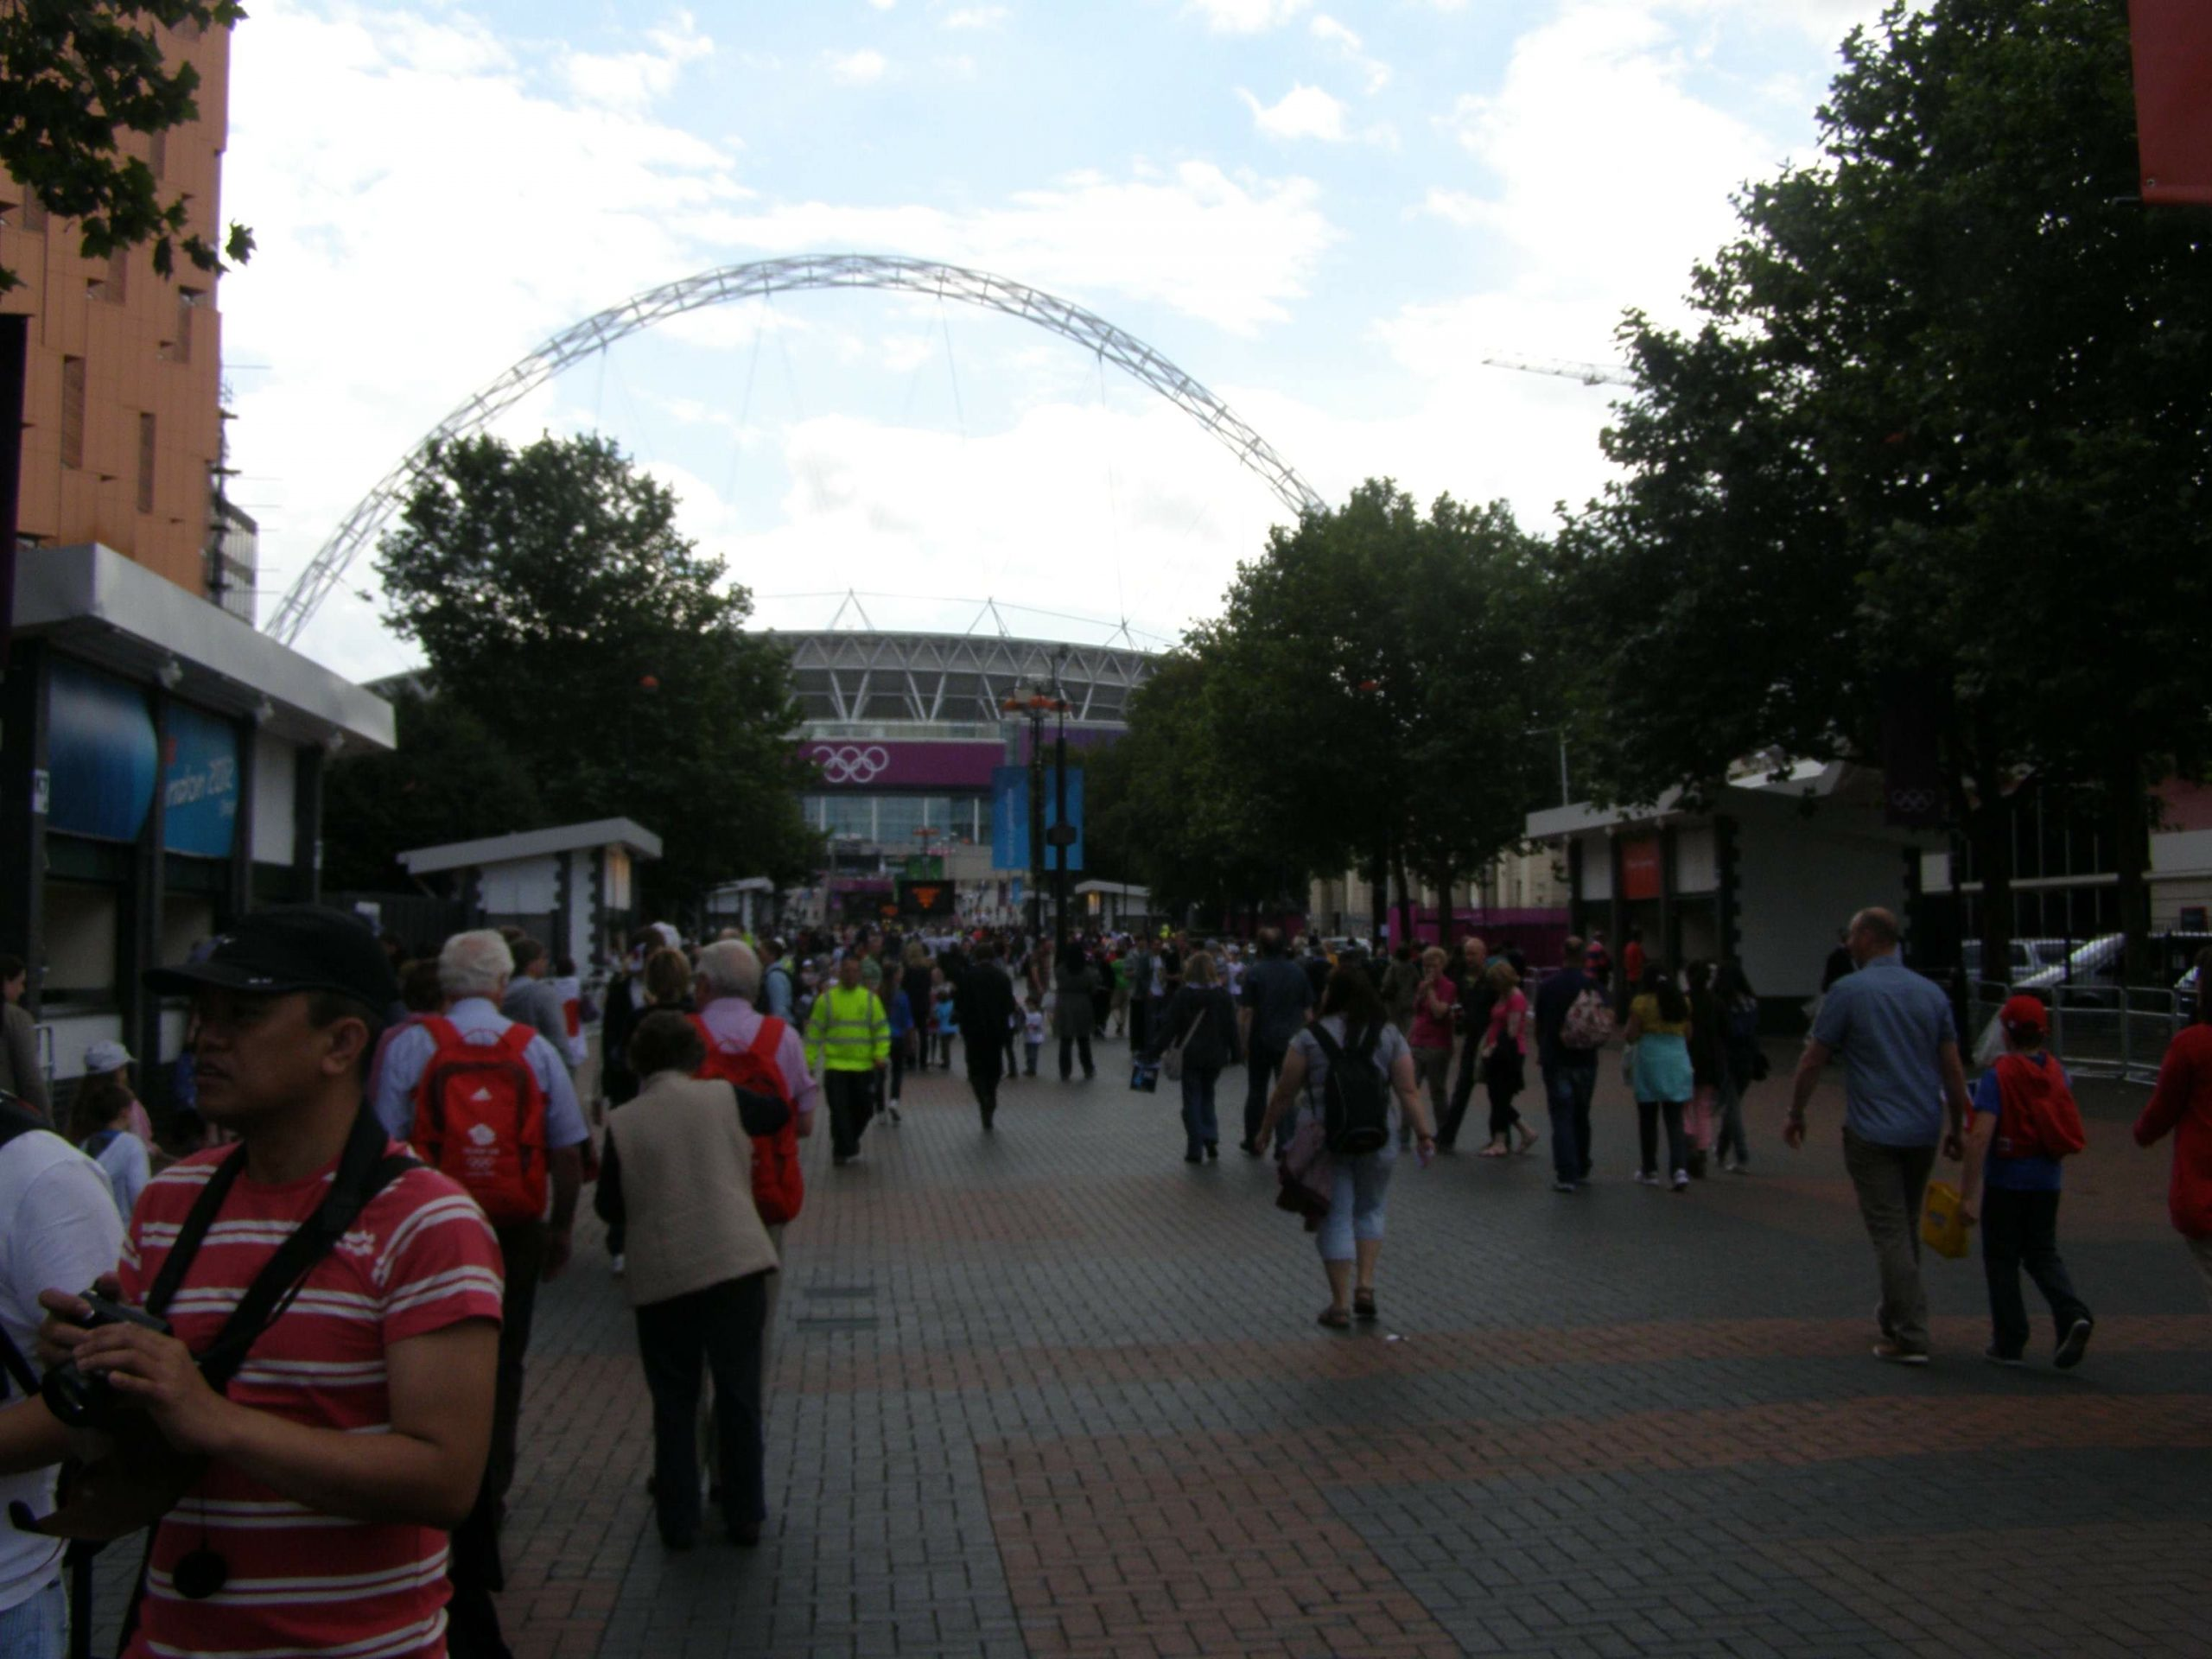 Wembley at last